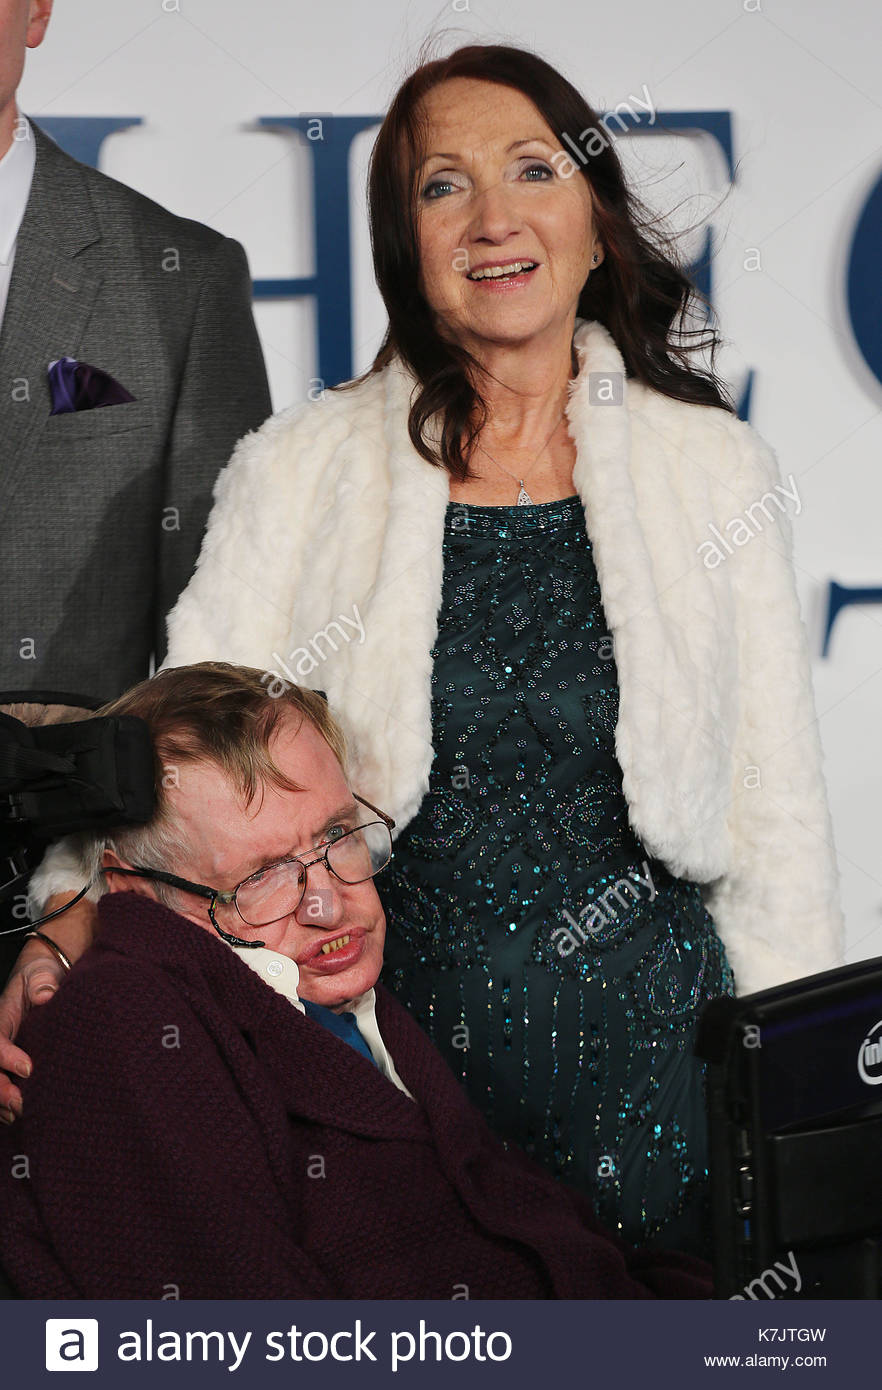 Stephen Hawking And Jane Hawking World Premiere Of The Theory Of Everything